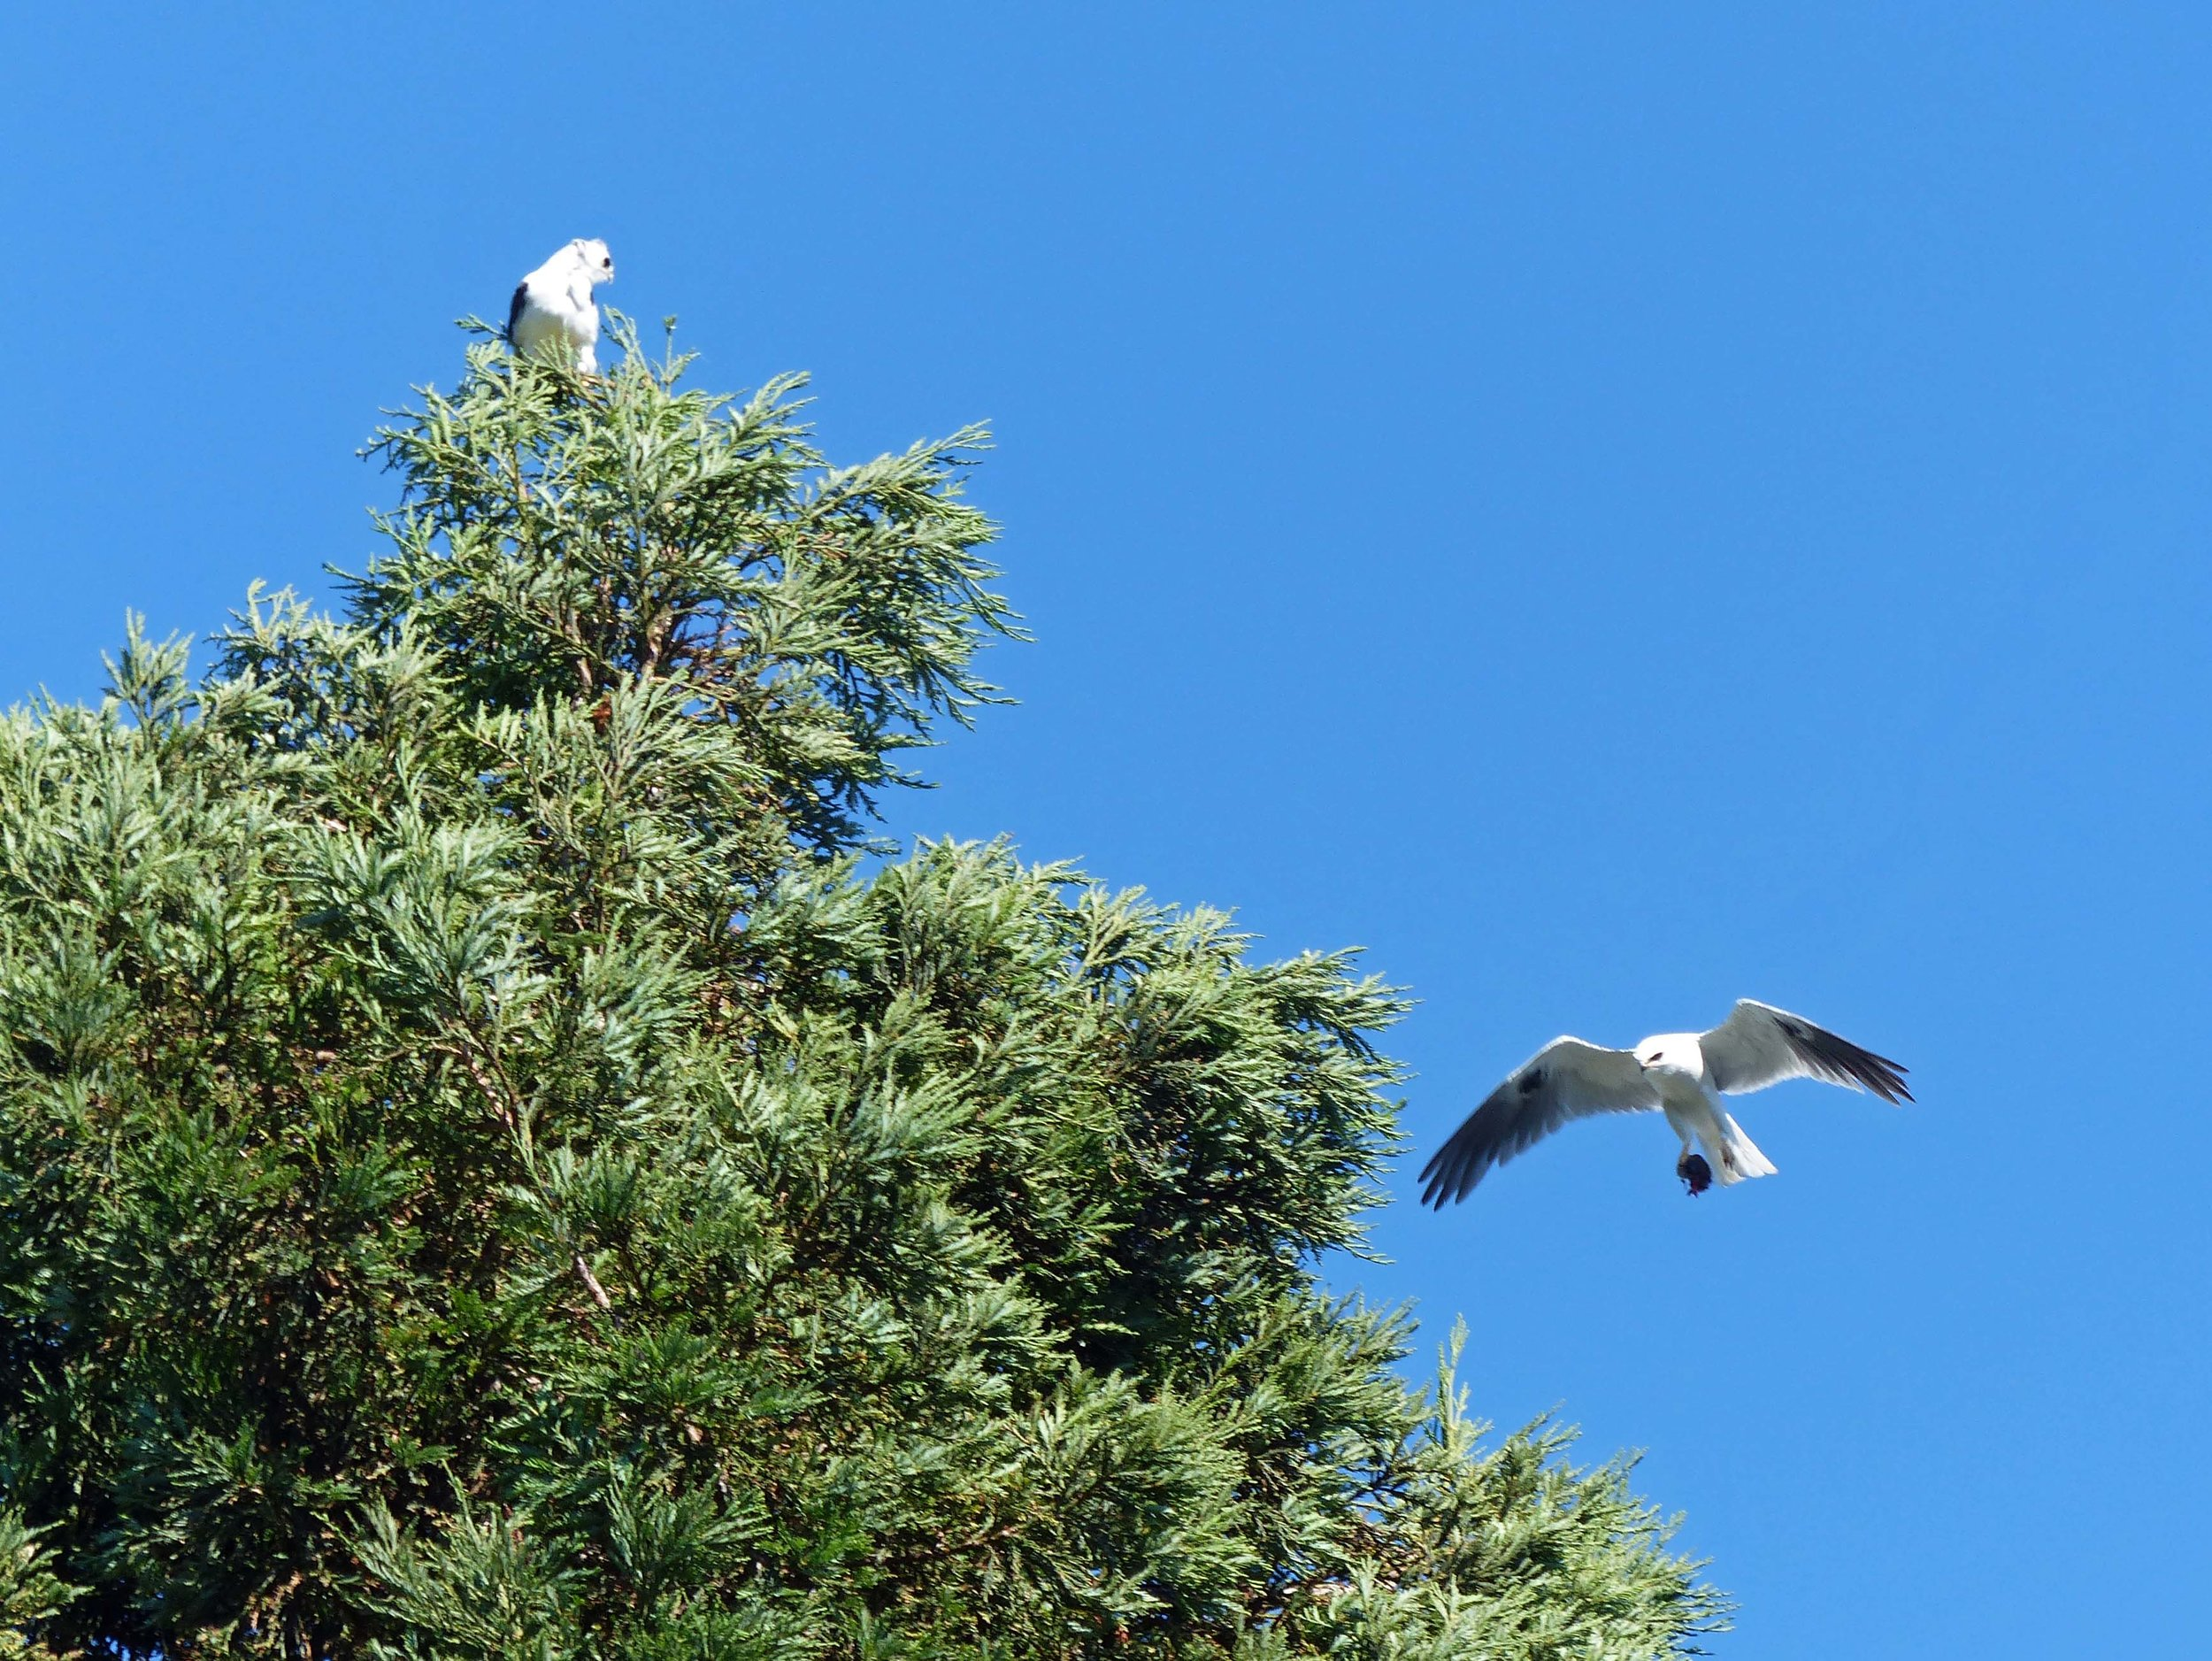 Summer 2018, Pete's front yard neighbors. This beautiful pair of White-tailed Kites built their nest in some redwood trees in front of his house and kept everyone busy all summer as they raised their young. Bringing home the bacon for the family.